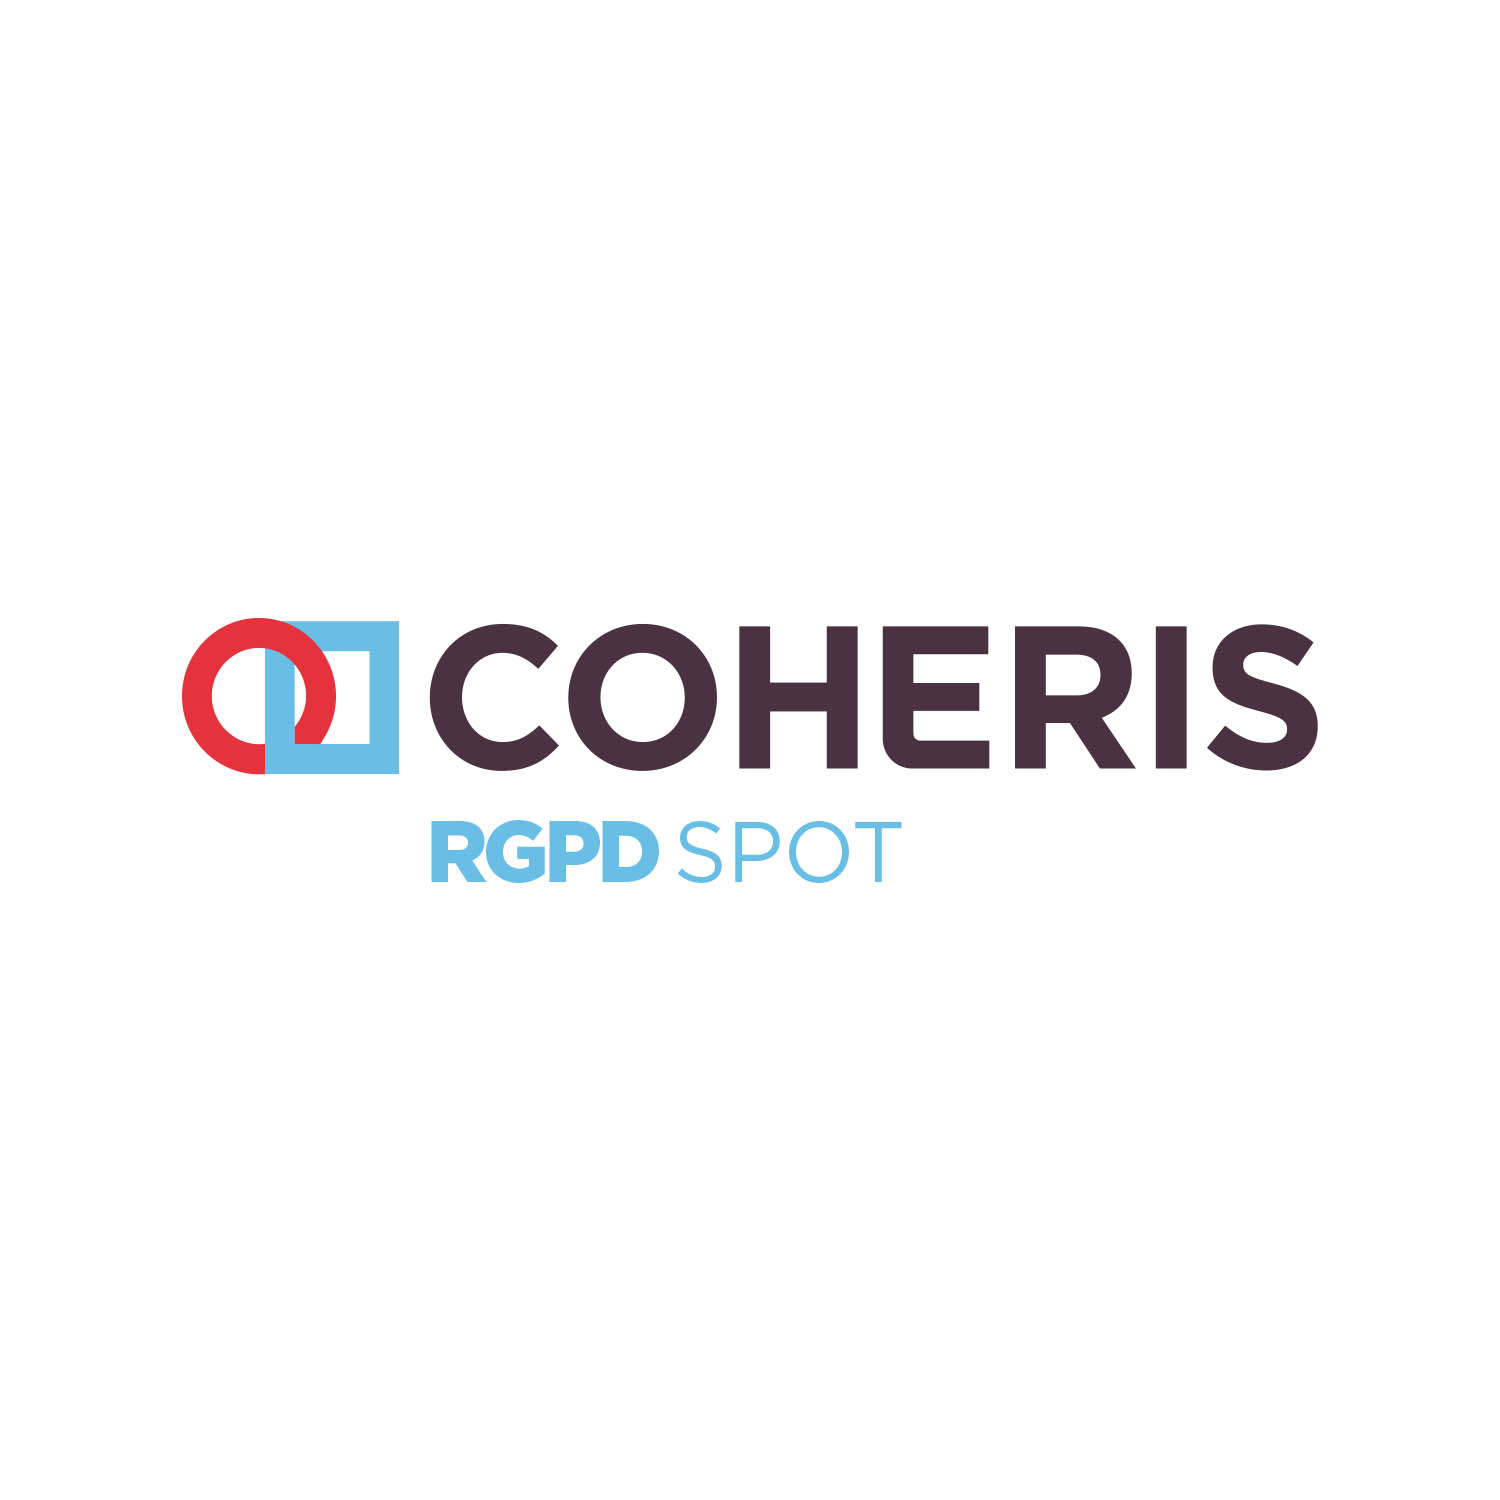 Product Management – Coheris RGPD Spot